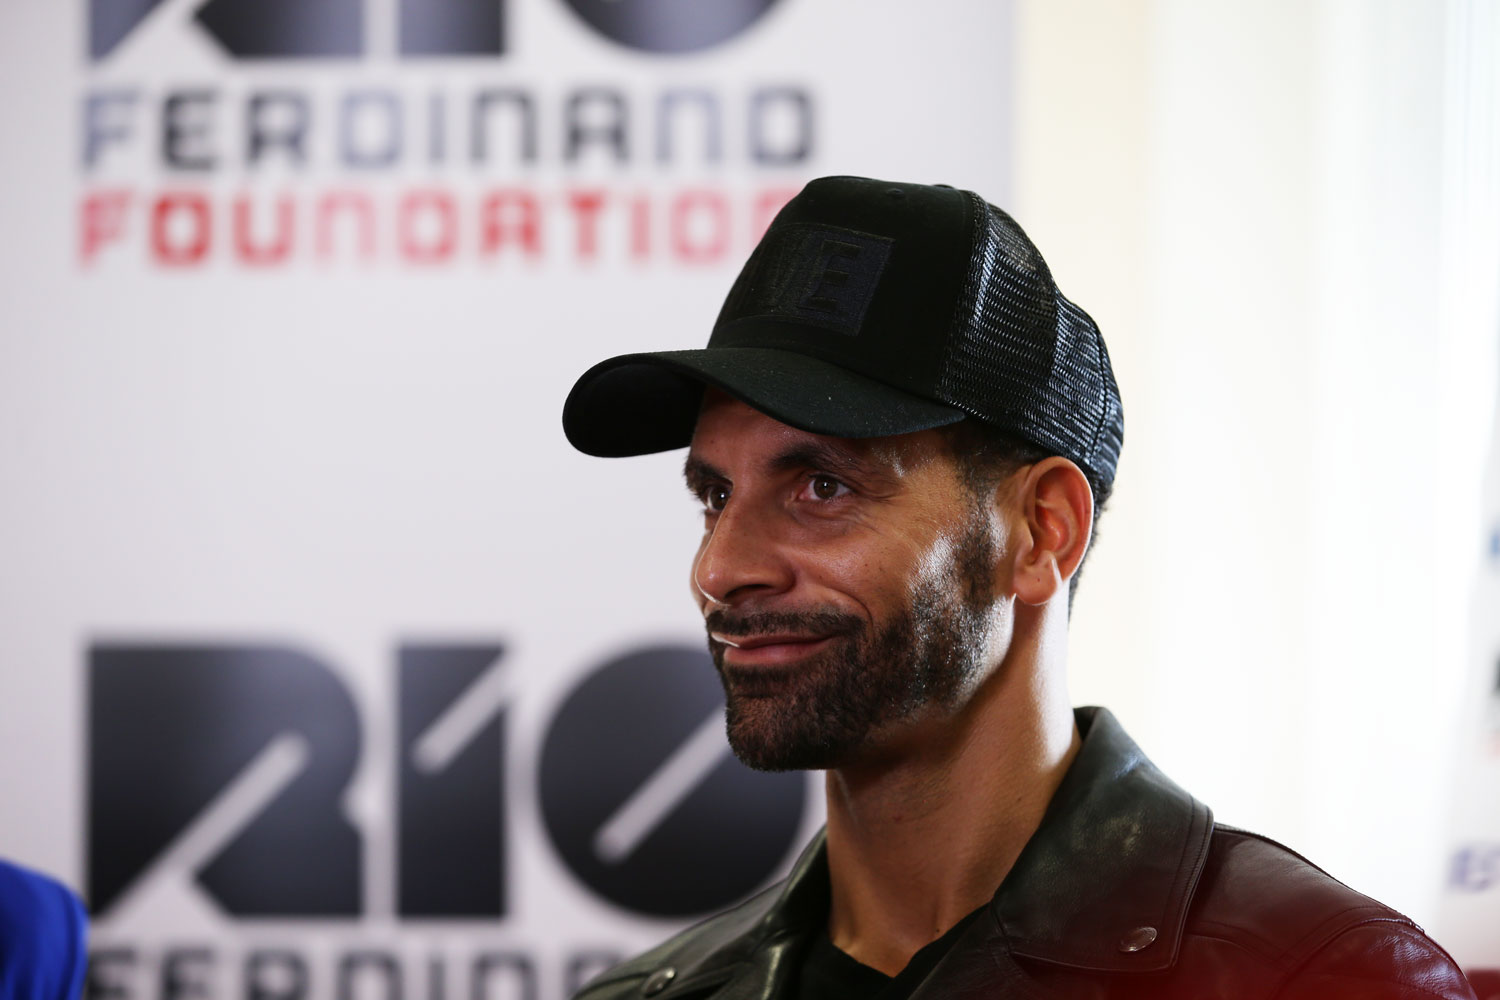 BT - 'Be Work Ready' with Rio Ferdinand